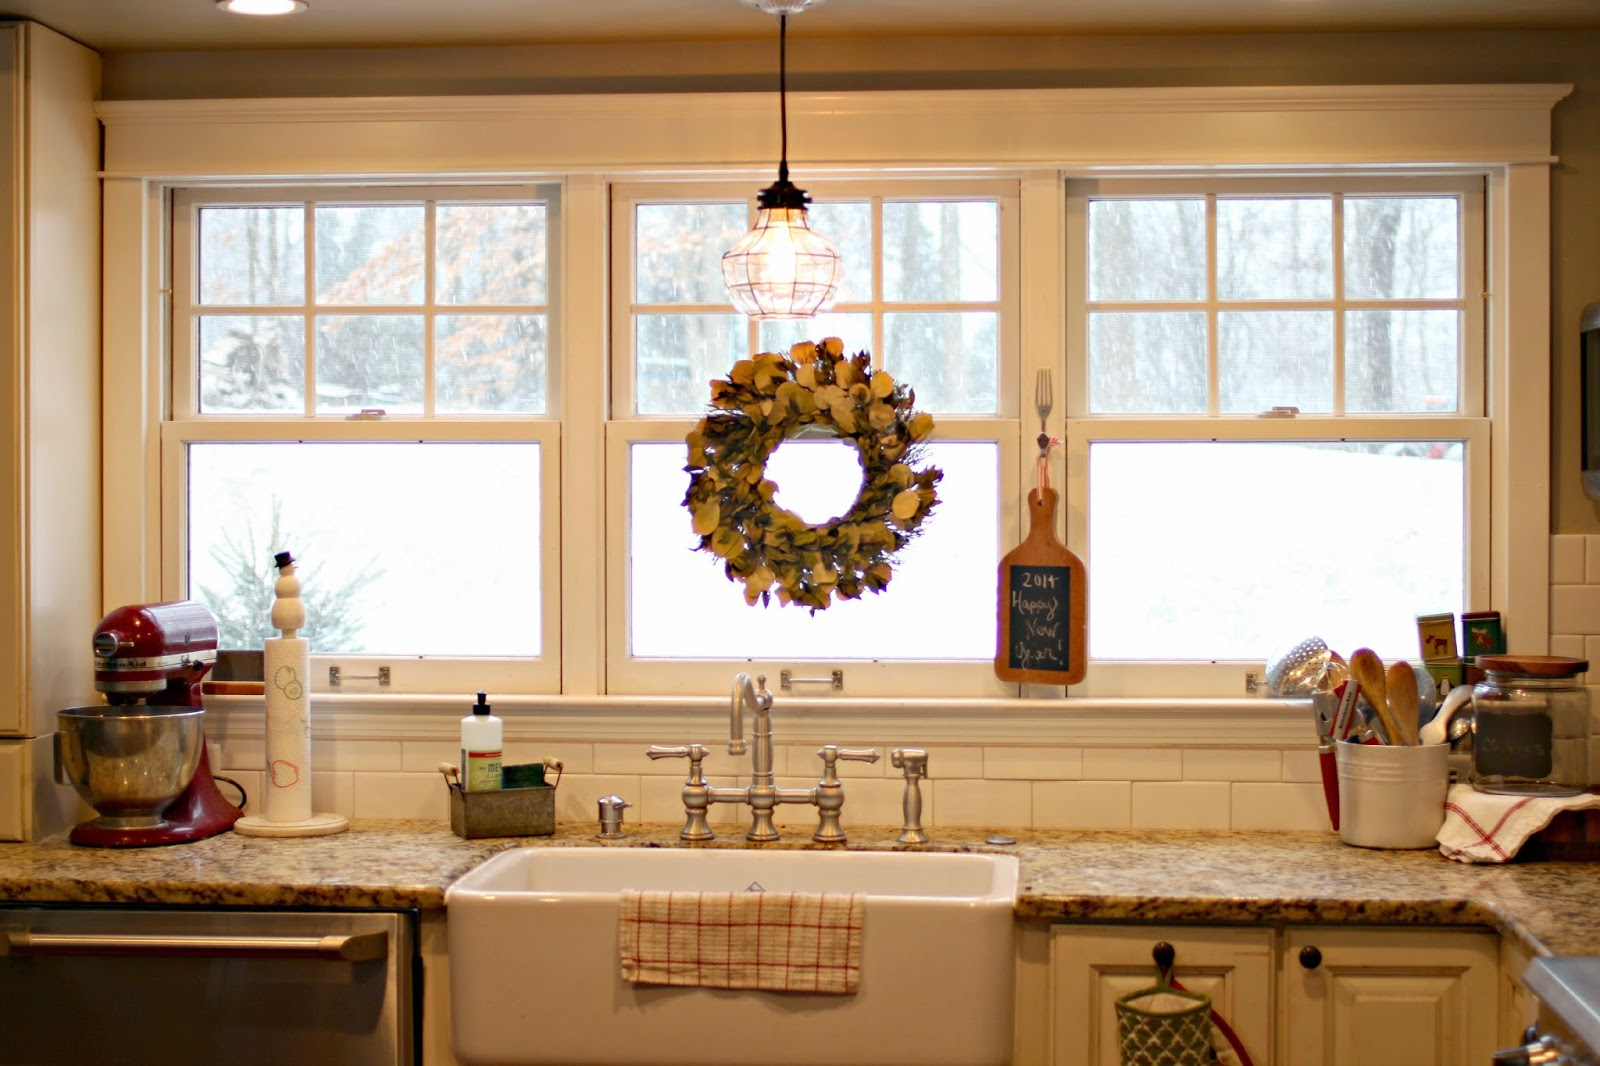 Over Kitchen Sink Lighting Ideas: Golden Boys And Me: Winter In Our Kitchen